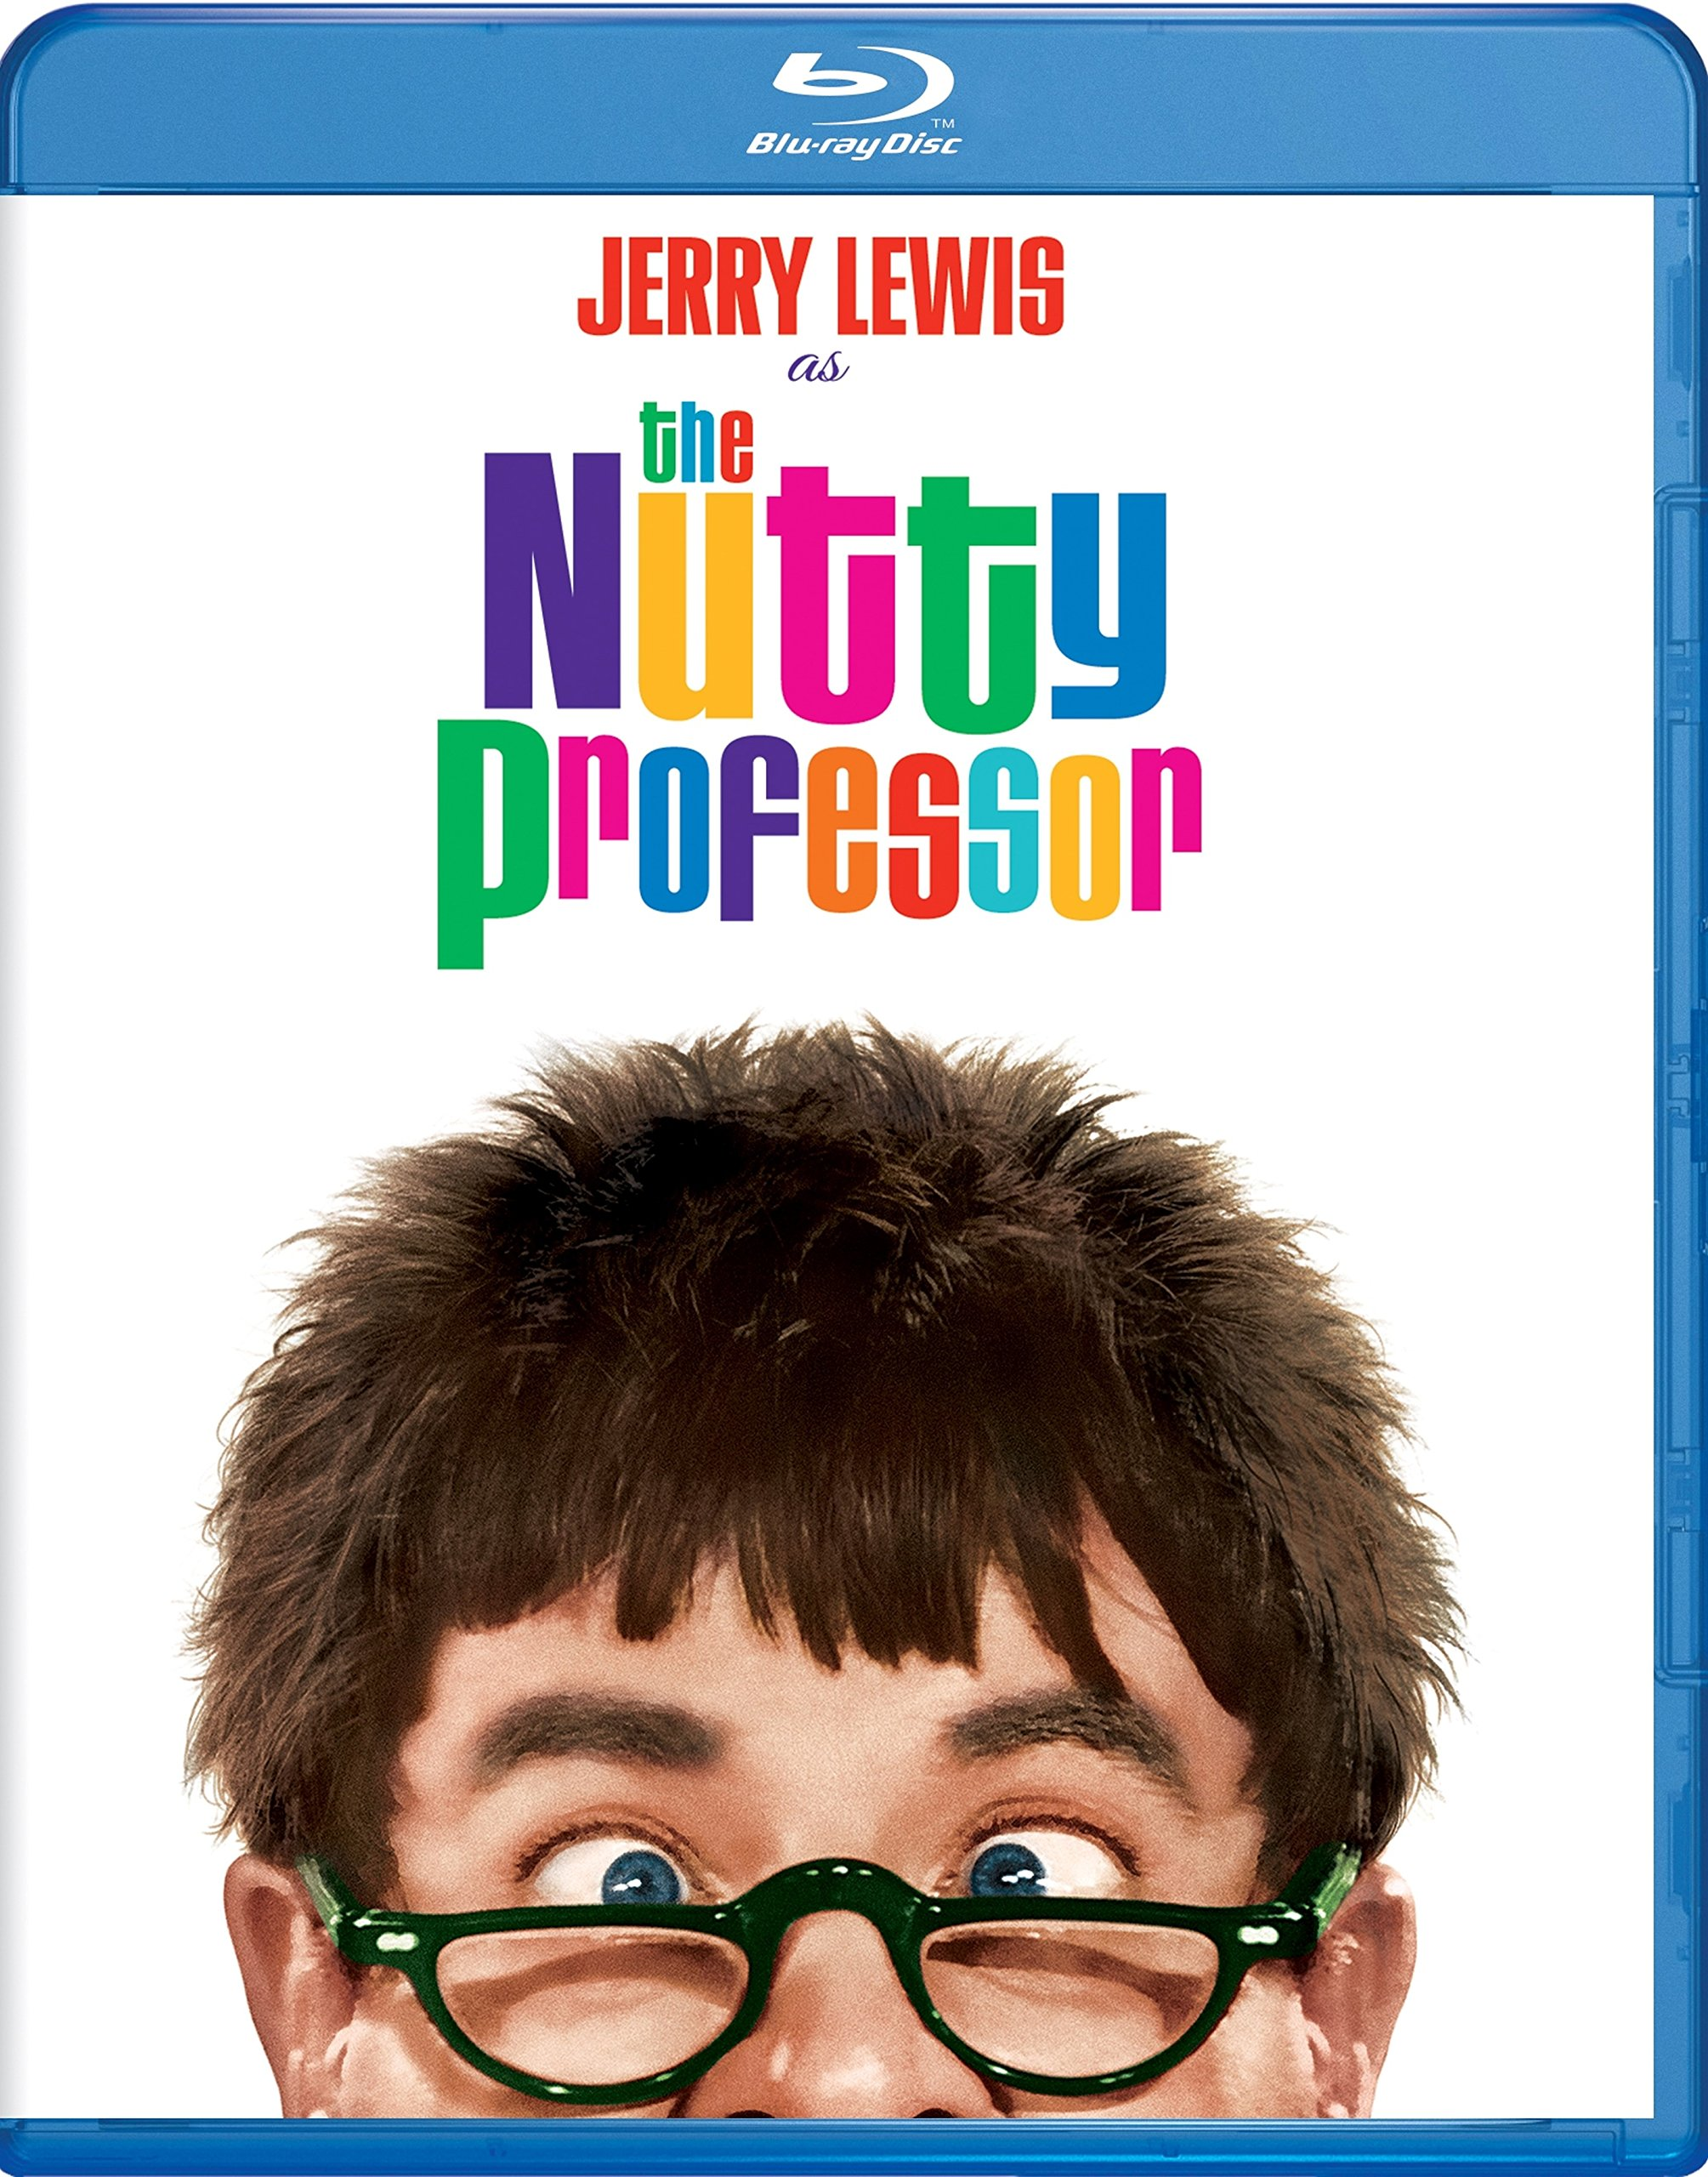 Blu-ray : The Nutty Professor (Widescreen, Digital Theater System, Mono Sound)